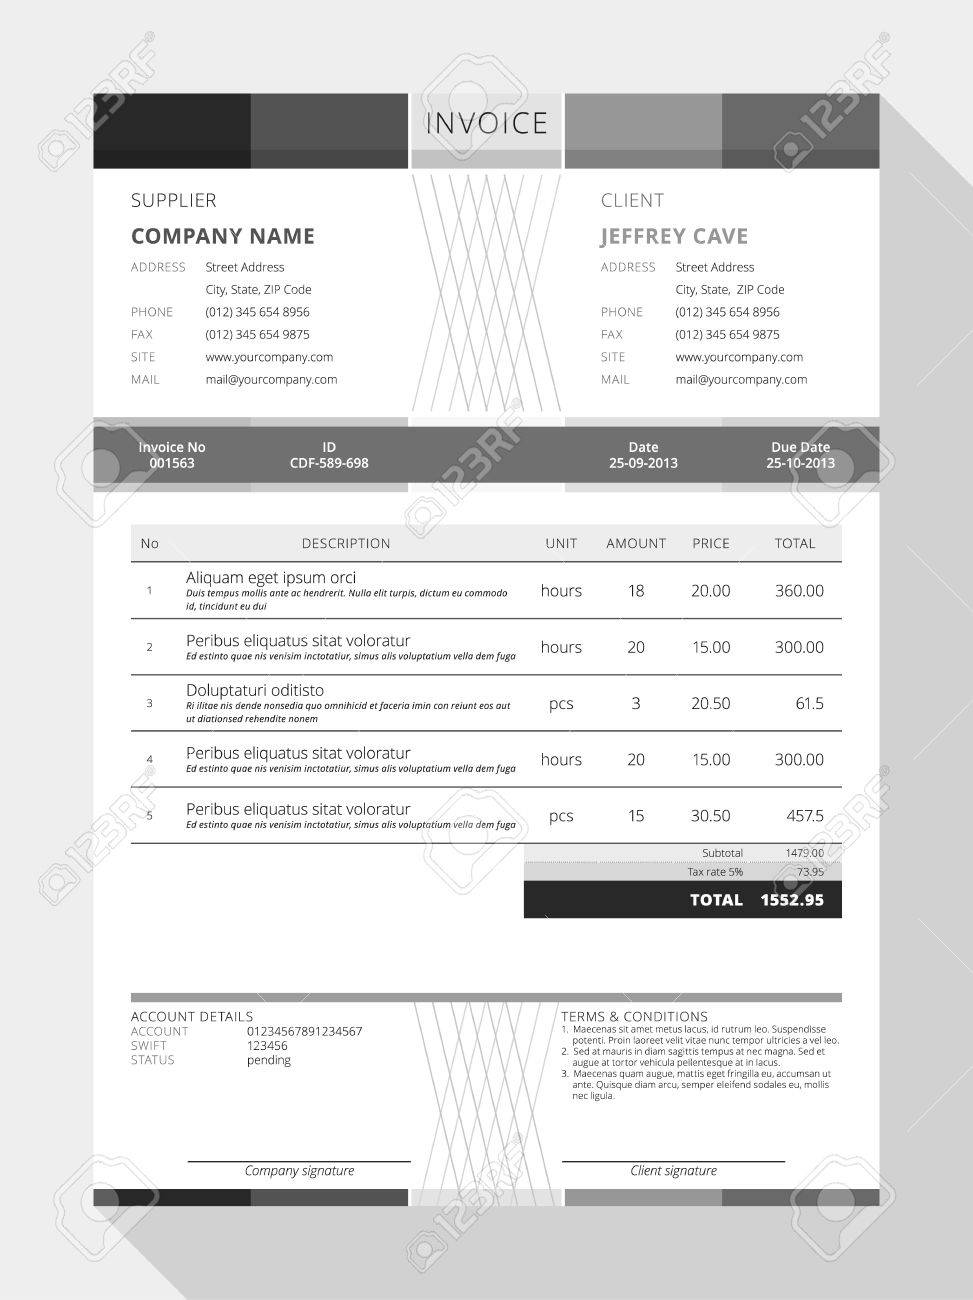 Darkfaderus  Picturesque Design An Invoice  Professional Graphic Design Invoice  With Glamorous Vector Customizable Invoice Form Template Design Vector   Design An Invoice With Astonishing Rent Invoice Template Word Also Send Invoices Online In Addition Best Small Business Invoice Software And Invoice Of A Car As Well As Toyota Invoice Prices Additionally Invoicing Companies From Happytomco With Darkfaderus  Glamorous Design An Invoice  Professional Graphic Design Invoice  With Astonishing Vector Customizable Invoice Form Template Design Vector   Design An Invoice And Picturesque Rent Invoice Template Word Also Send Invoices Online In Addition Best Small Business Invoice Software From Happytomco